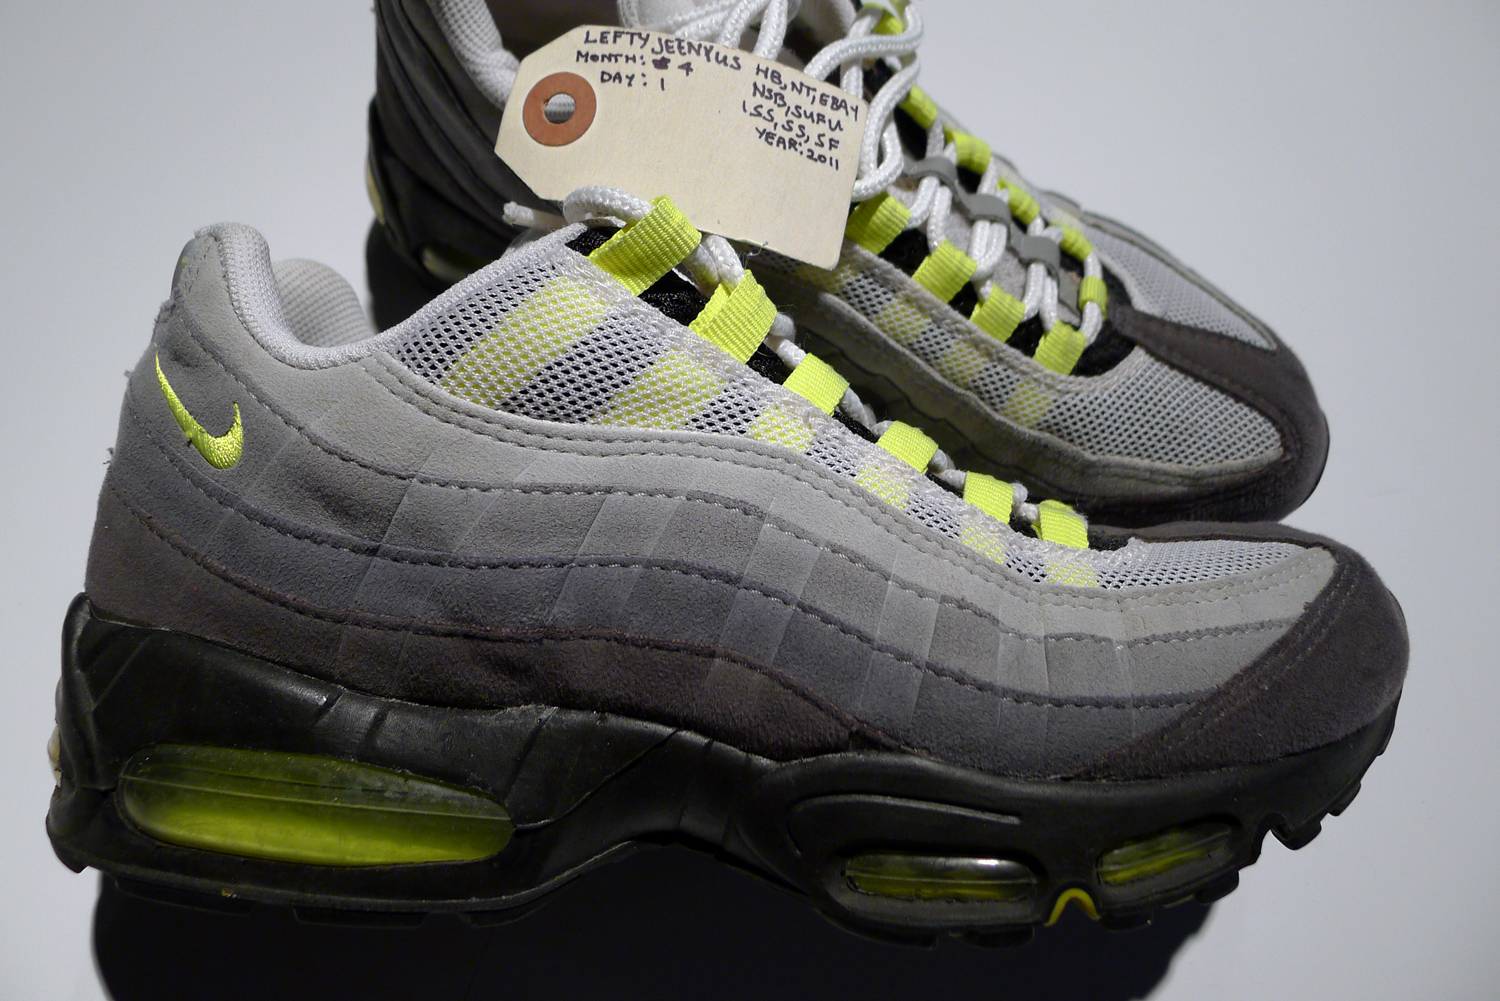 84429a788f Buy air max 95 neon for sale > Up to 49% Discounts